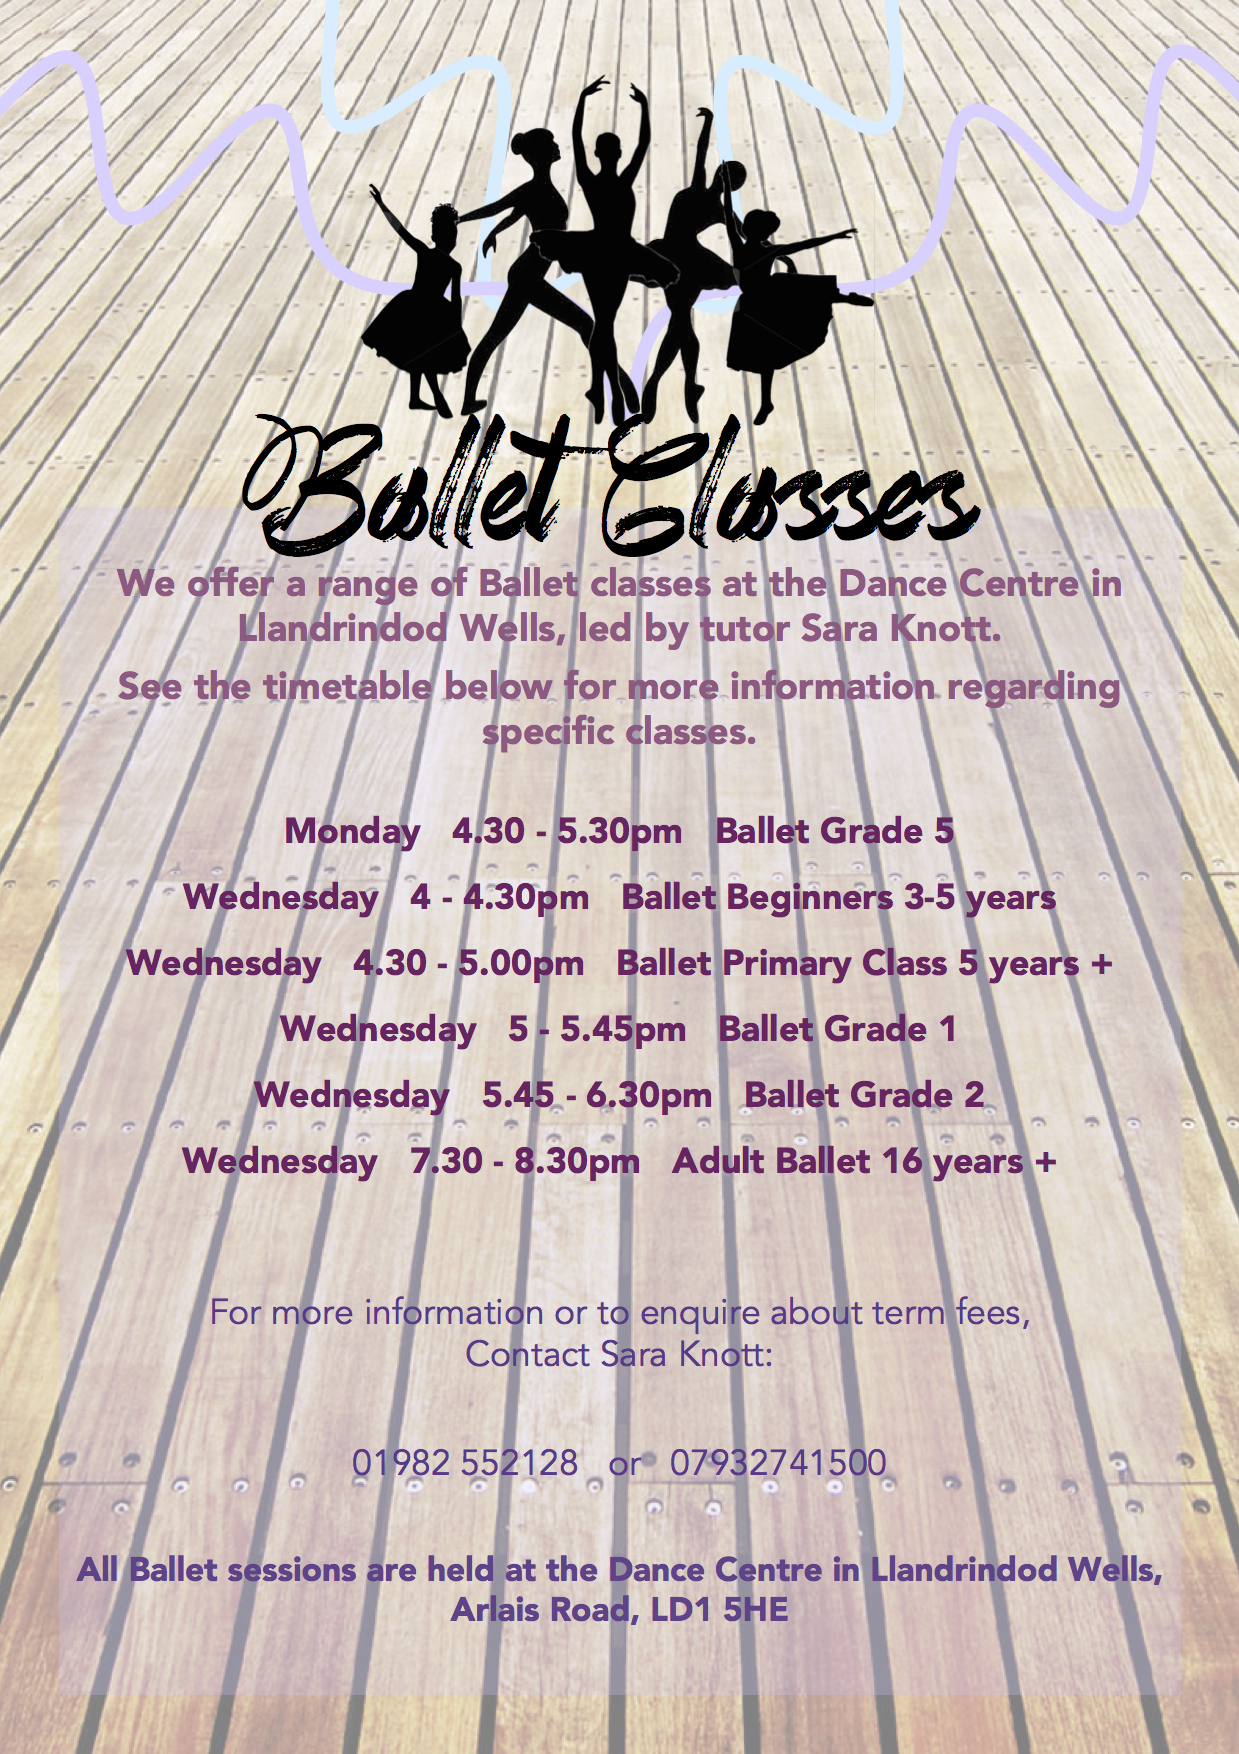 Information on all the different Ballet sessions happening and when!